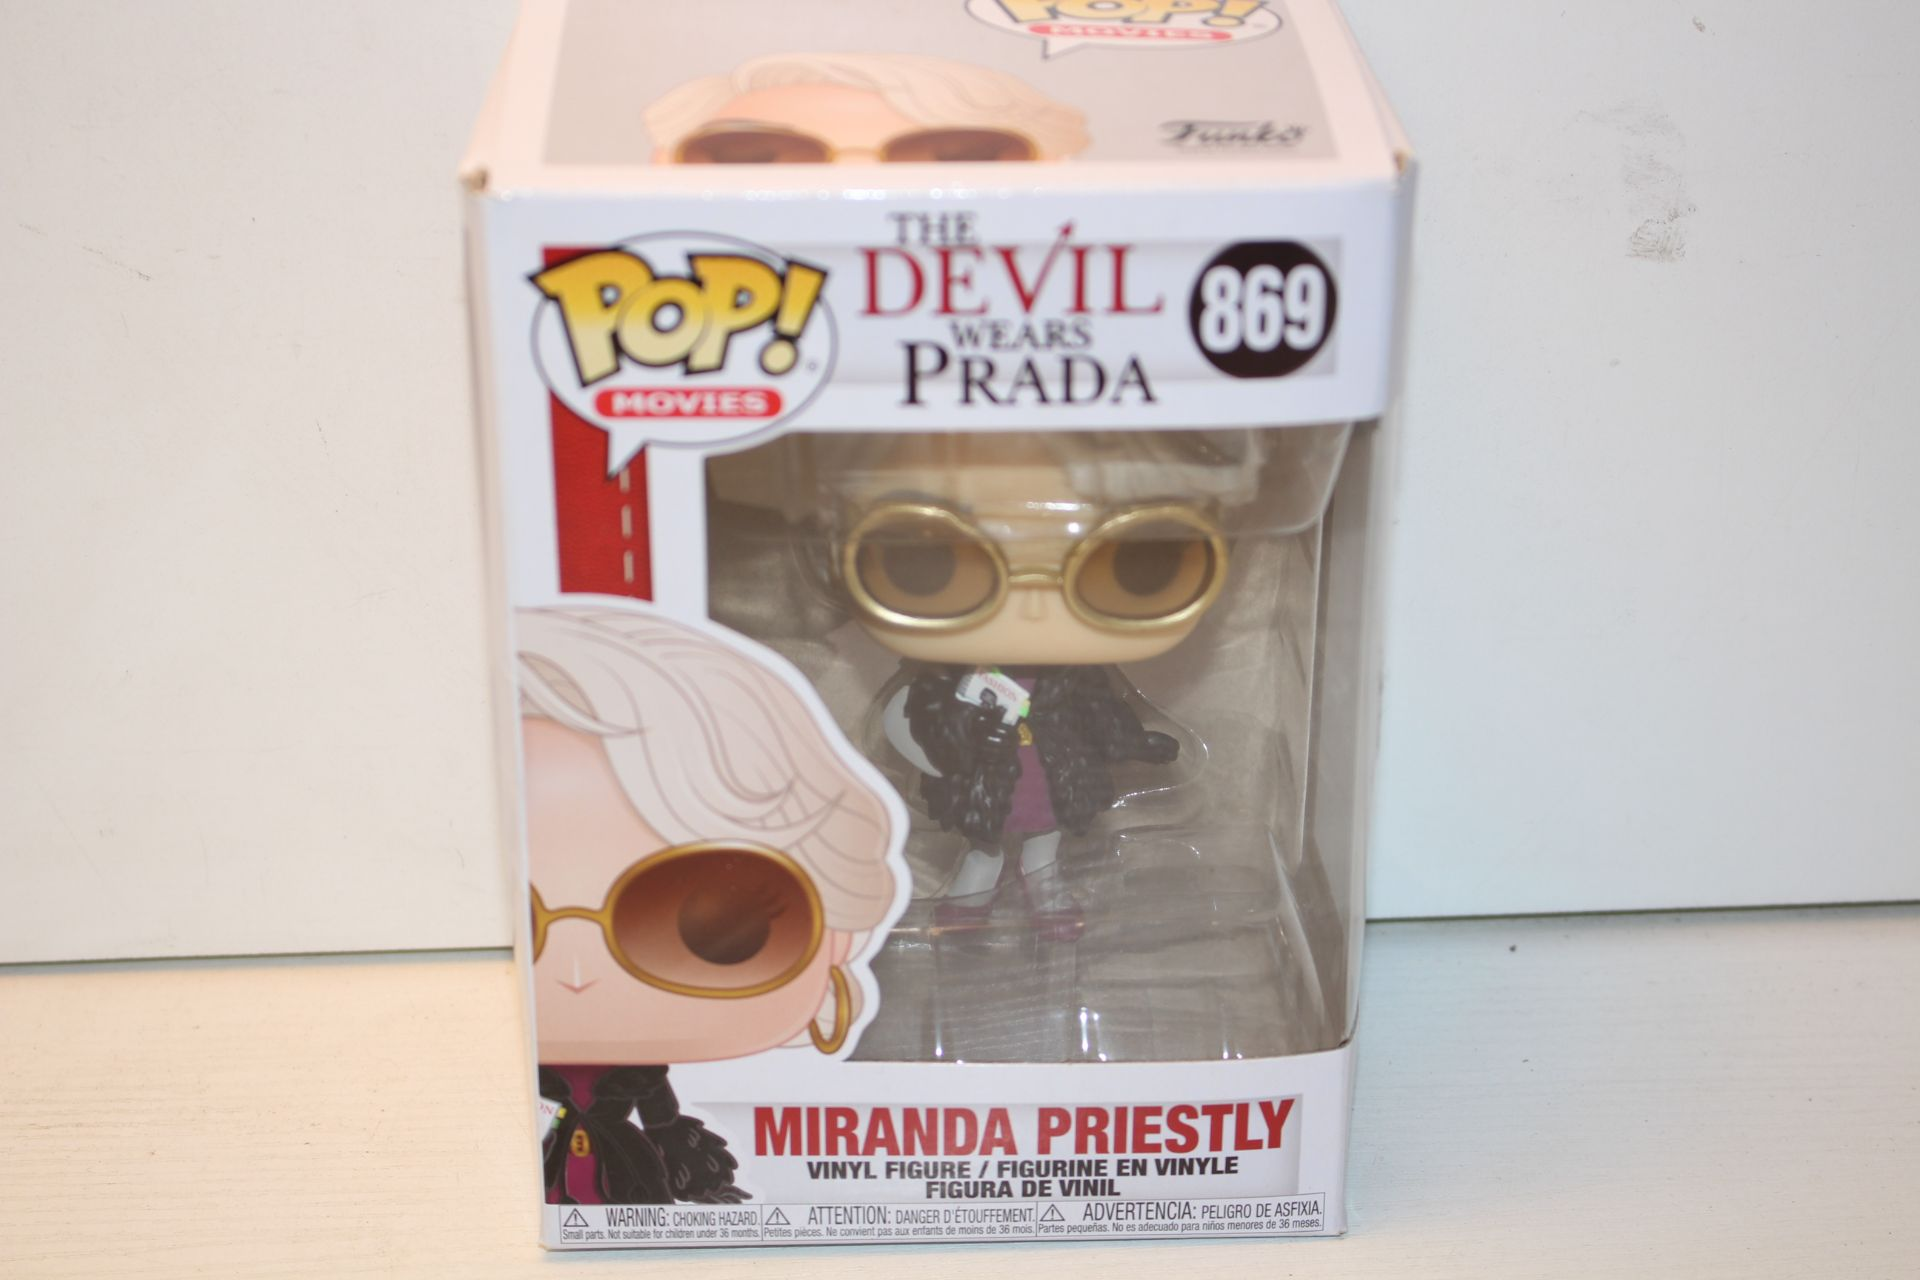 BOXED POP MOVIES THE DEVIL WEARS PRADA 869 RRP £12.99Condition ReportAppraisal Available on Request-